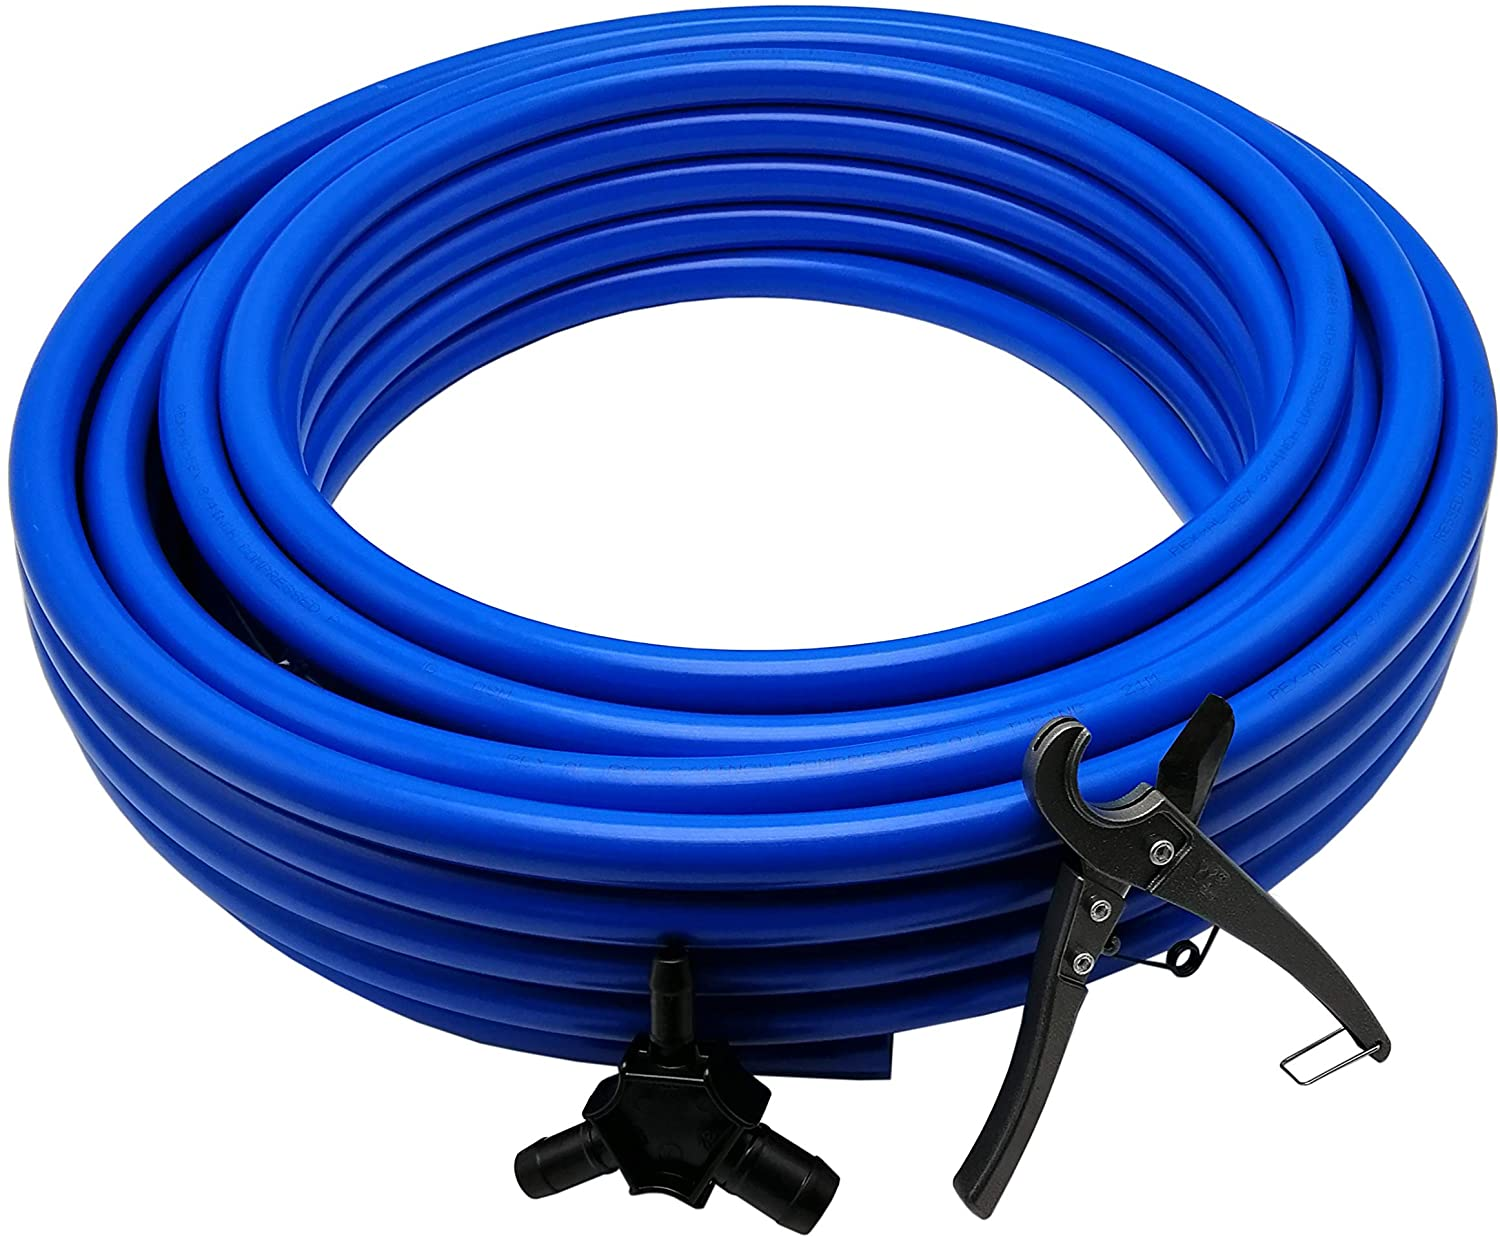 3 | 4 INCH TUBING INDUSTRIAL COMPRESSED AIR PIPING SYSTEM 100 FEET LENGTH